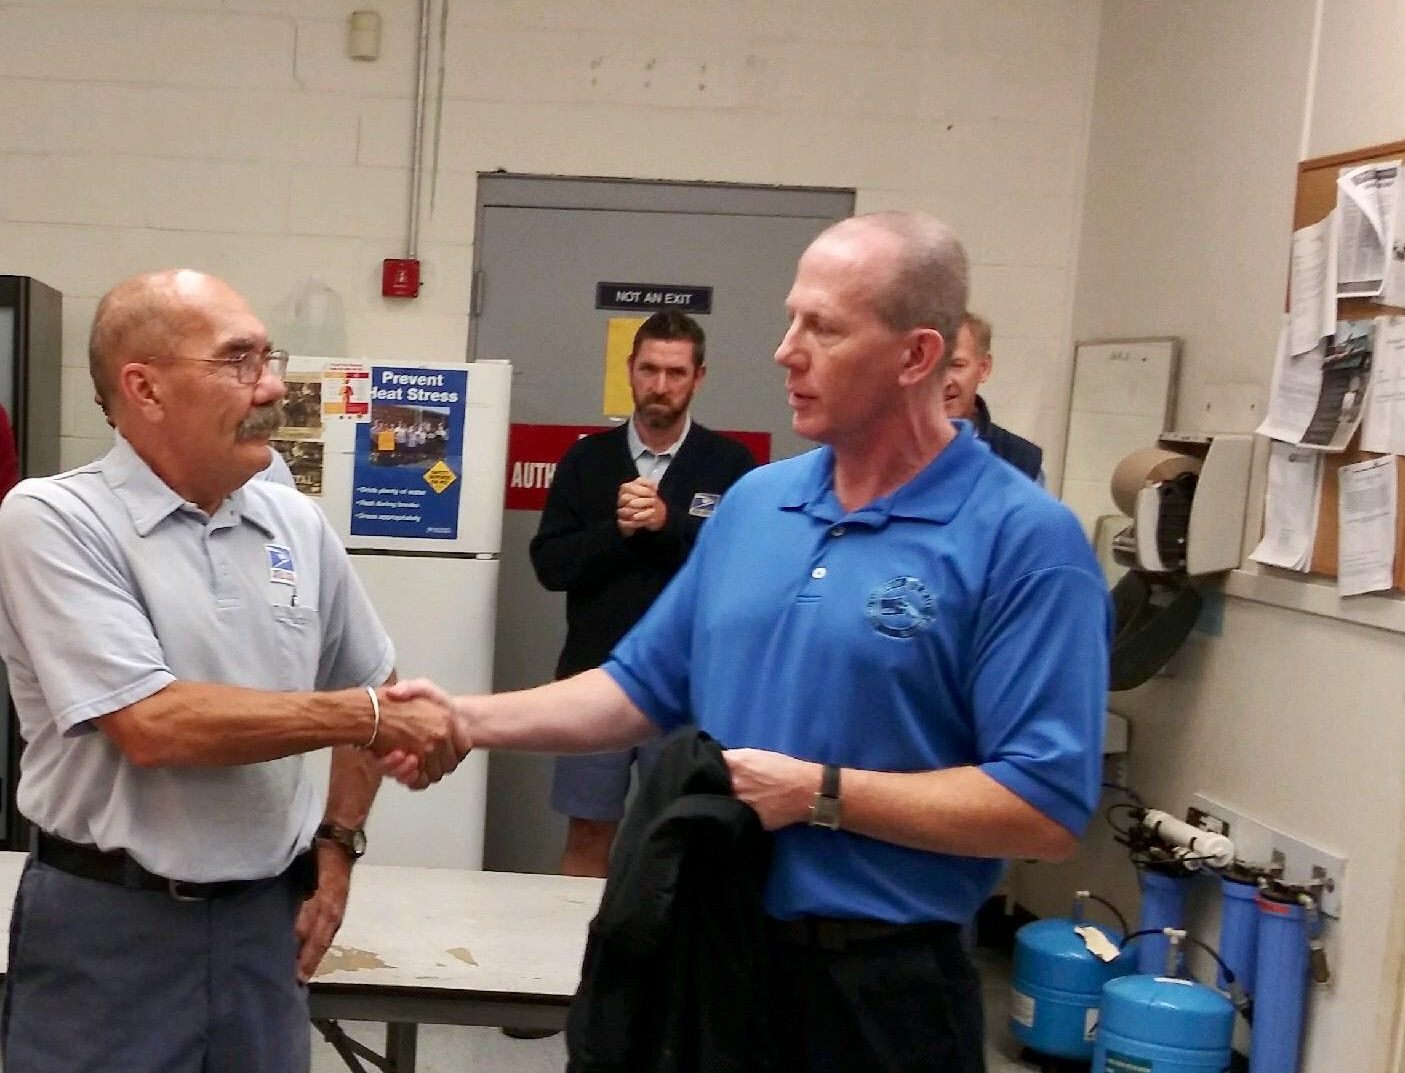 Branch Secretary-Treasurer Mike Murray congratulate Dorchester's Brian Morrissey on his more than 30 years of service.